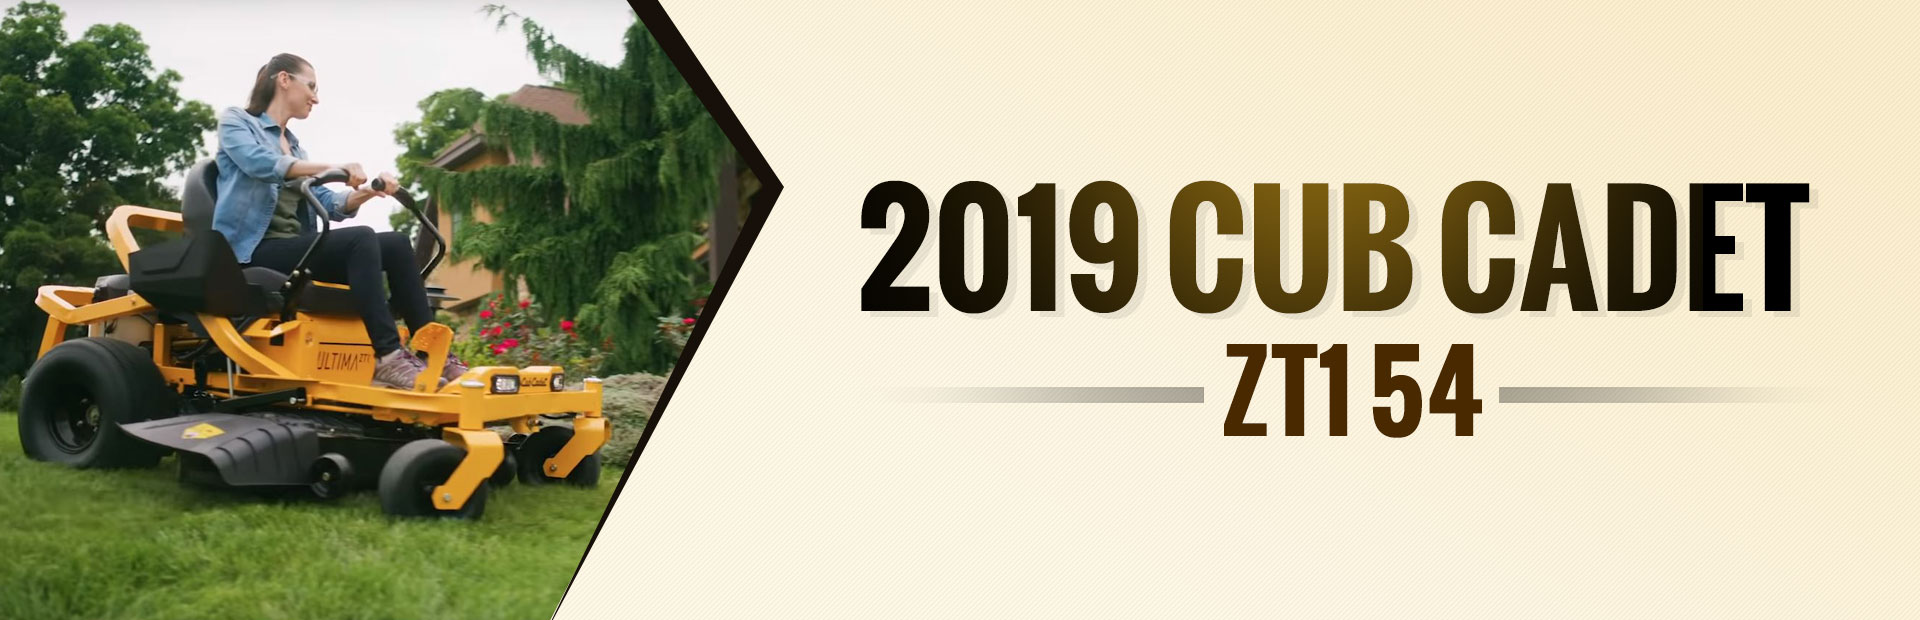 2019 Cub Cadet ZT1 54: Click here to view the model.